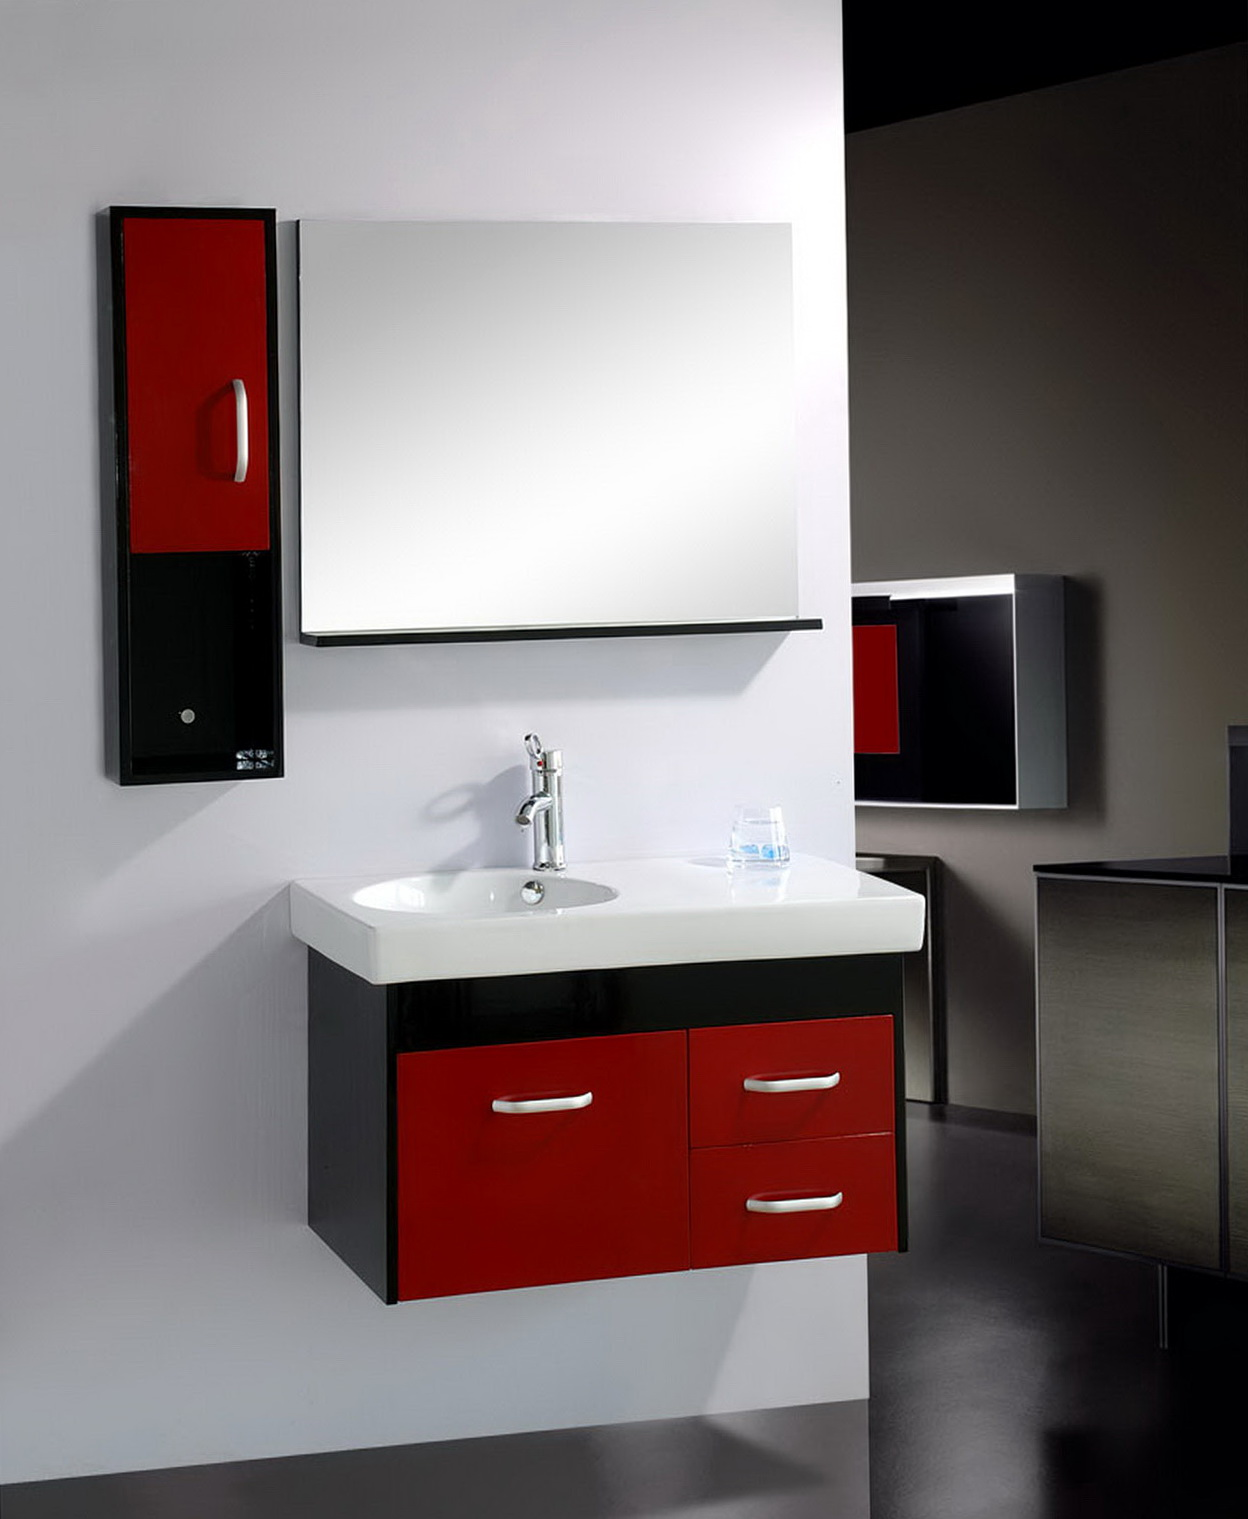 Small Bathroom Sinks With Cabinets